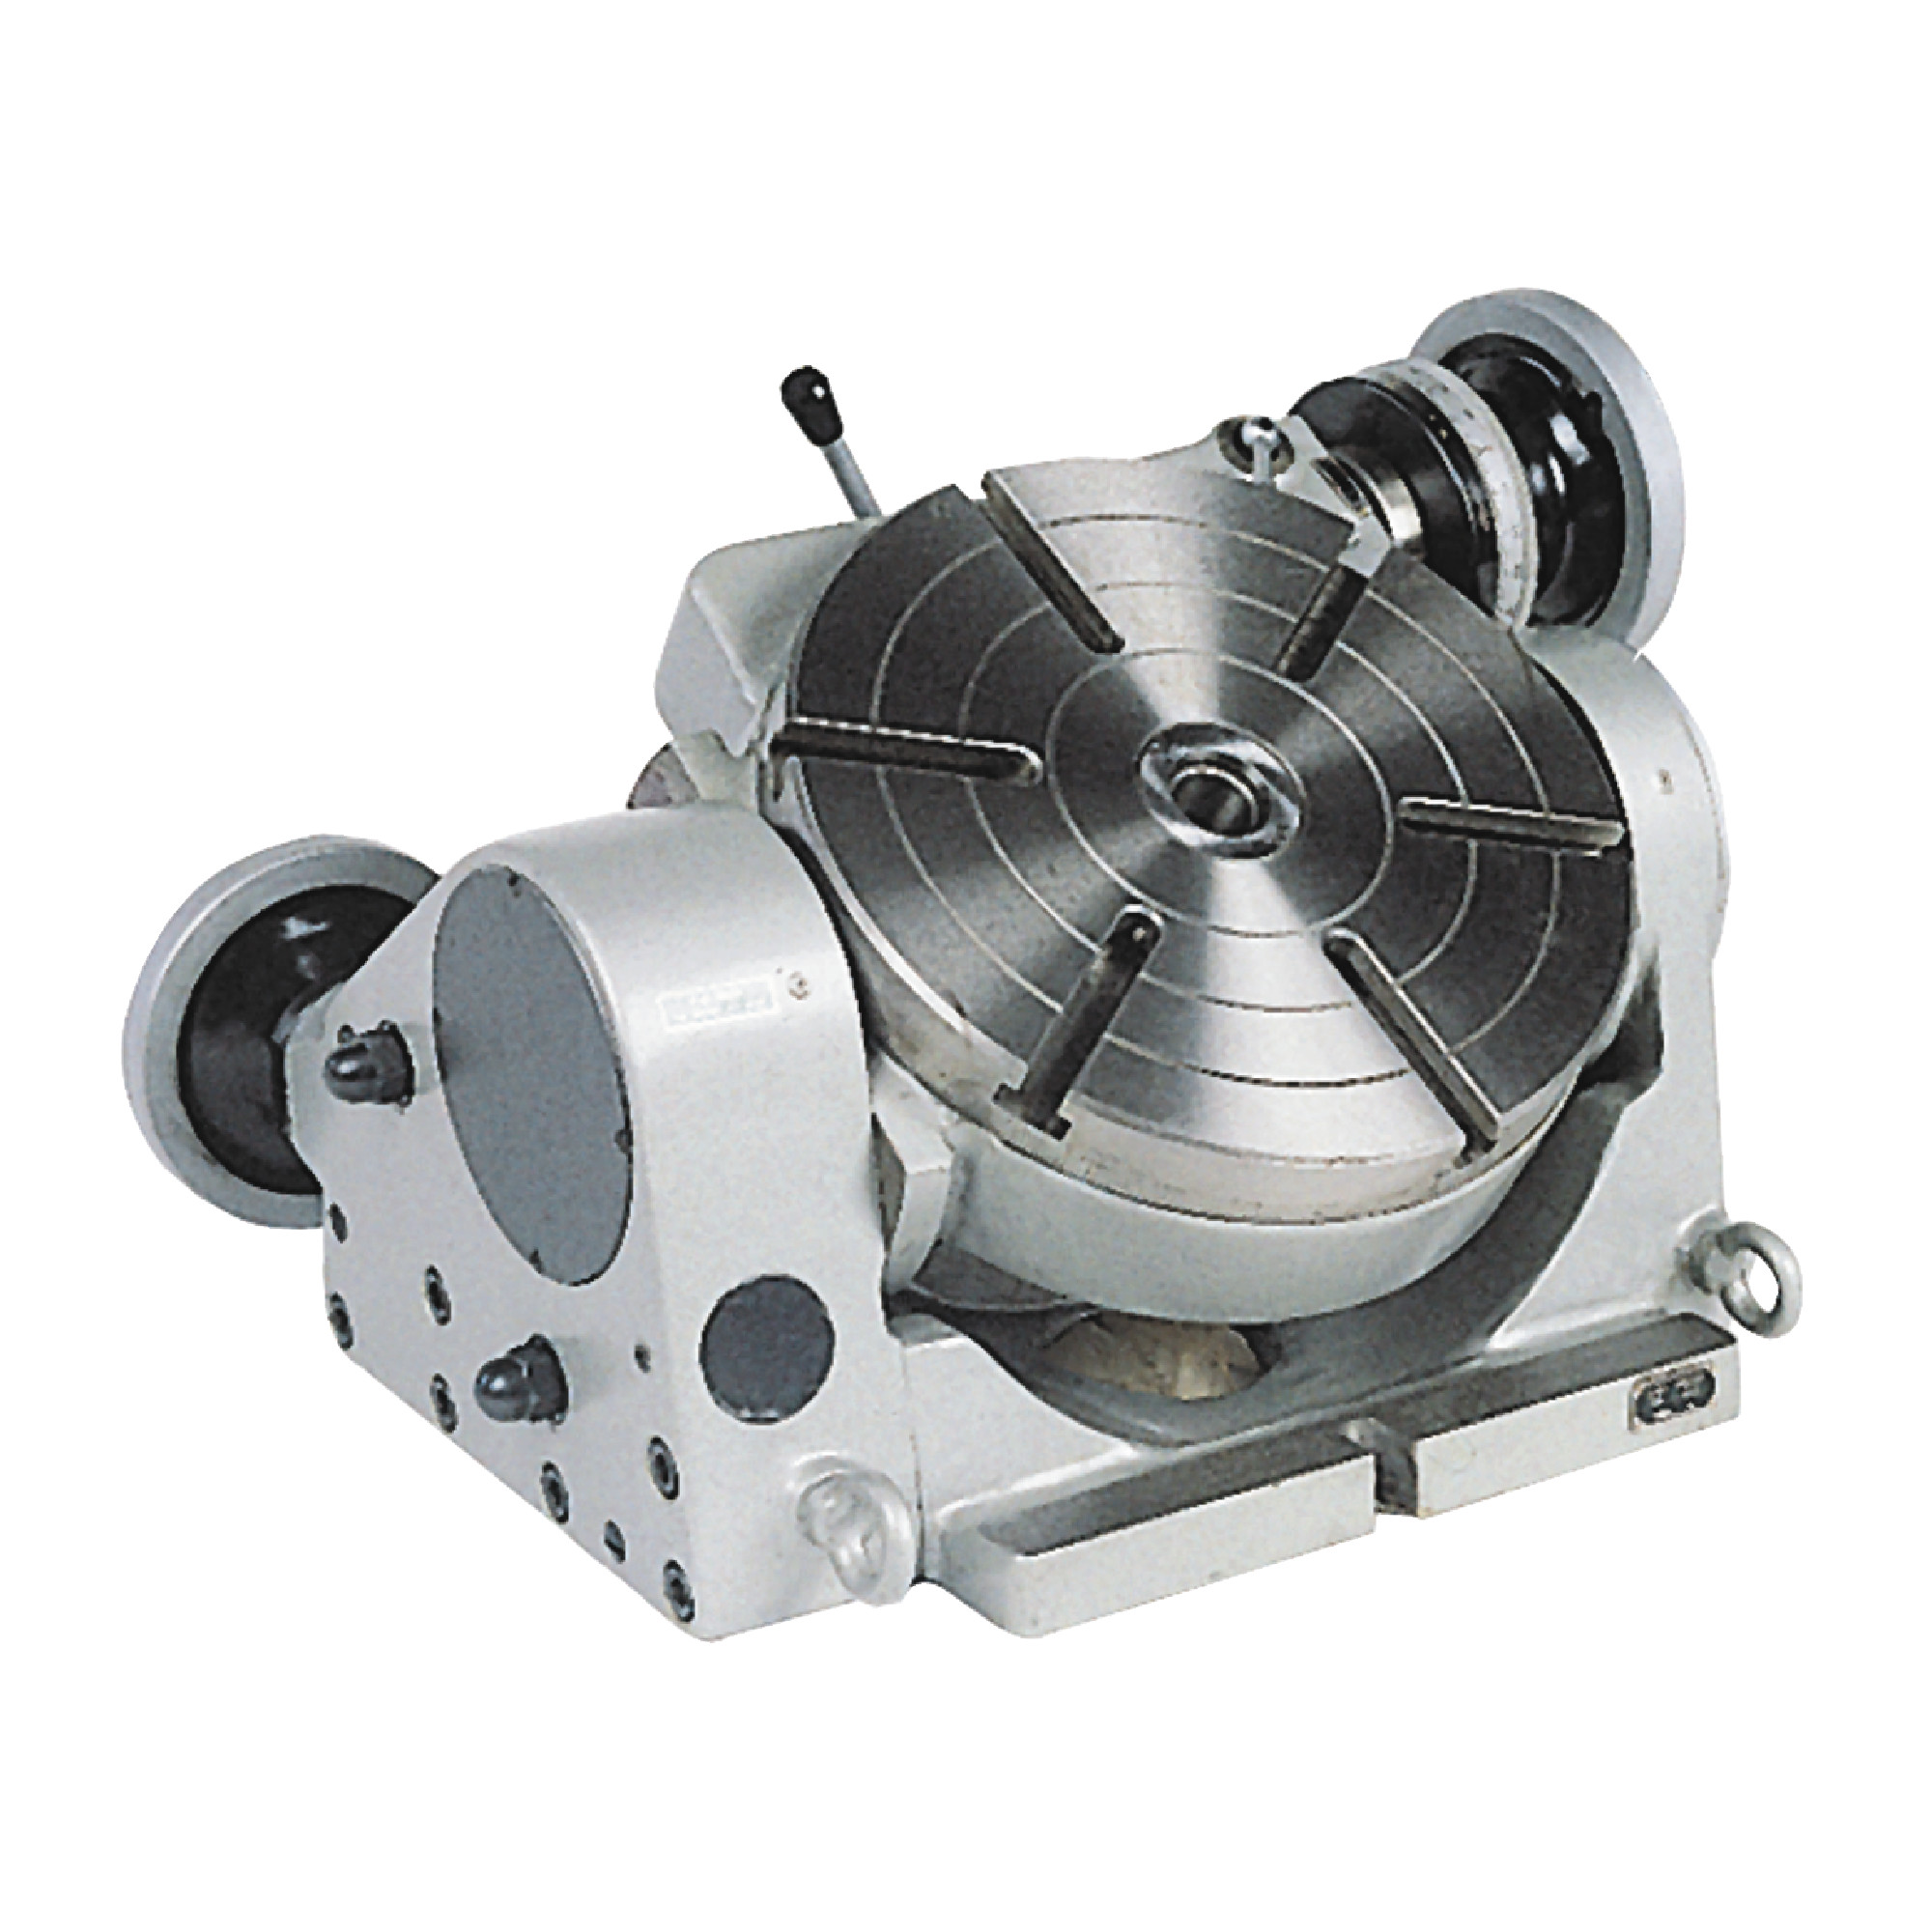 Precision Tilting Rotary Table